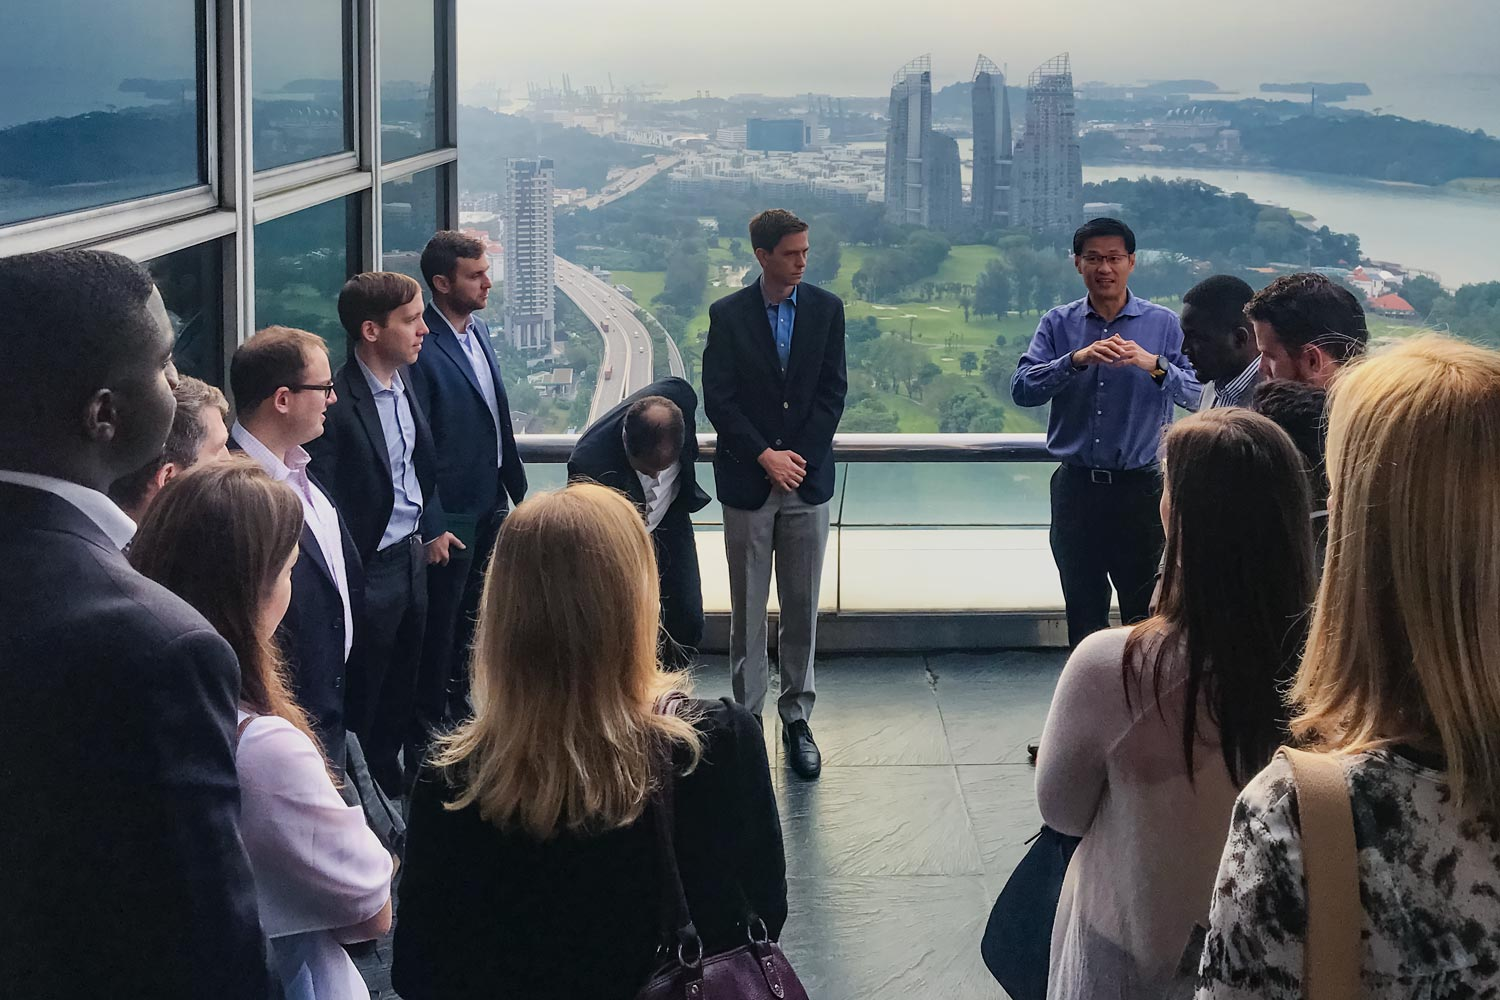 Darden students visit PSA in Singapore, a leader in global ports, as part of their Darden Worldwide Course to Singapore and Sri Lanka focused on addressing tough problems in business and society.